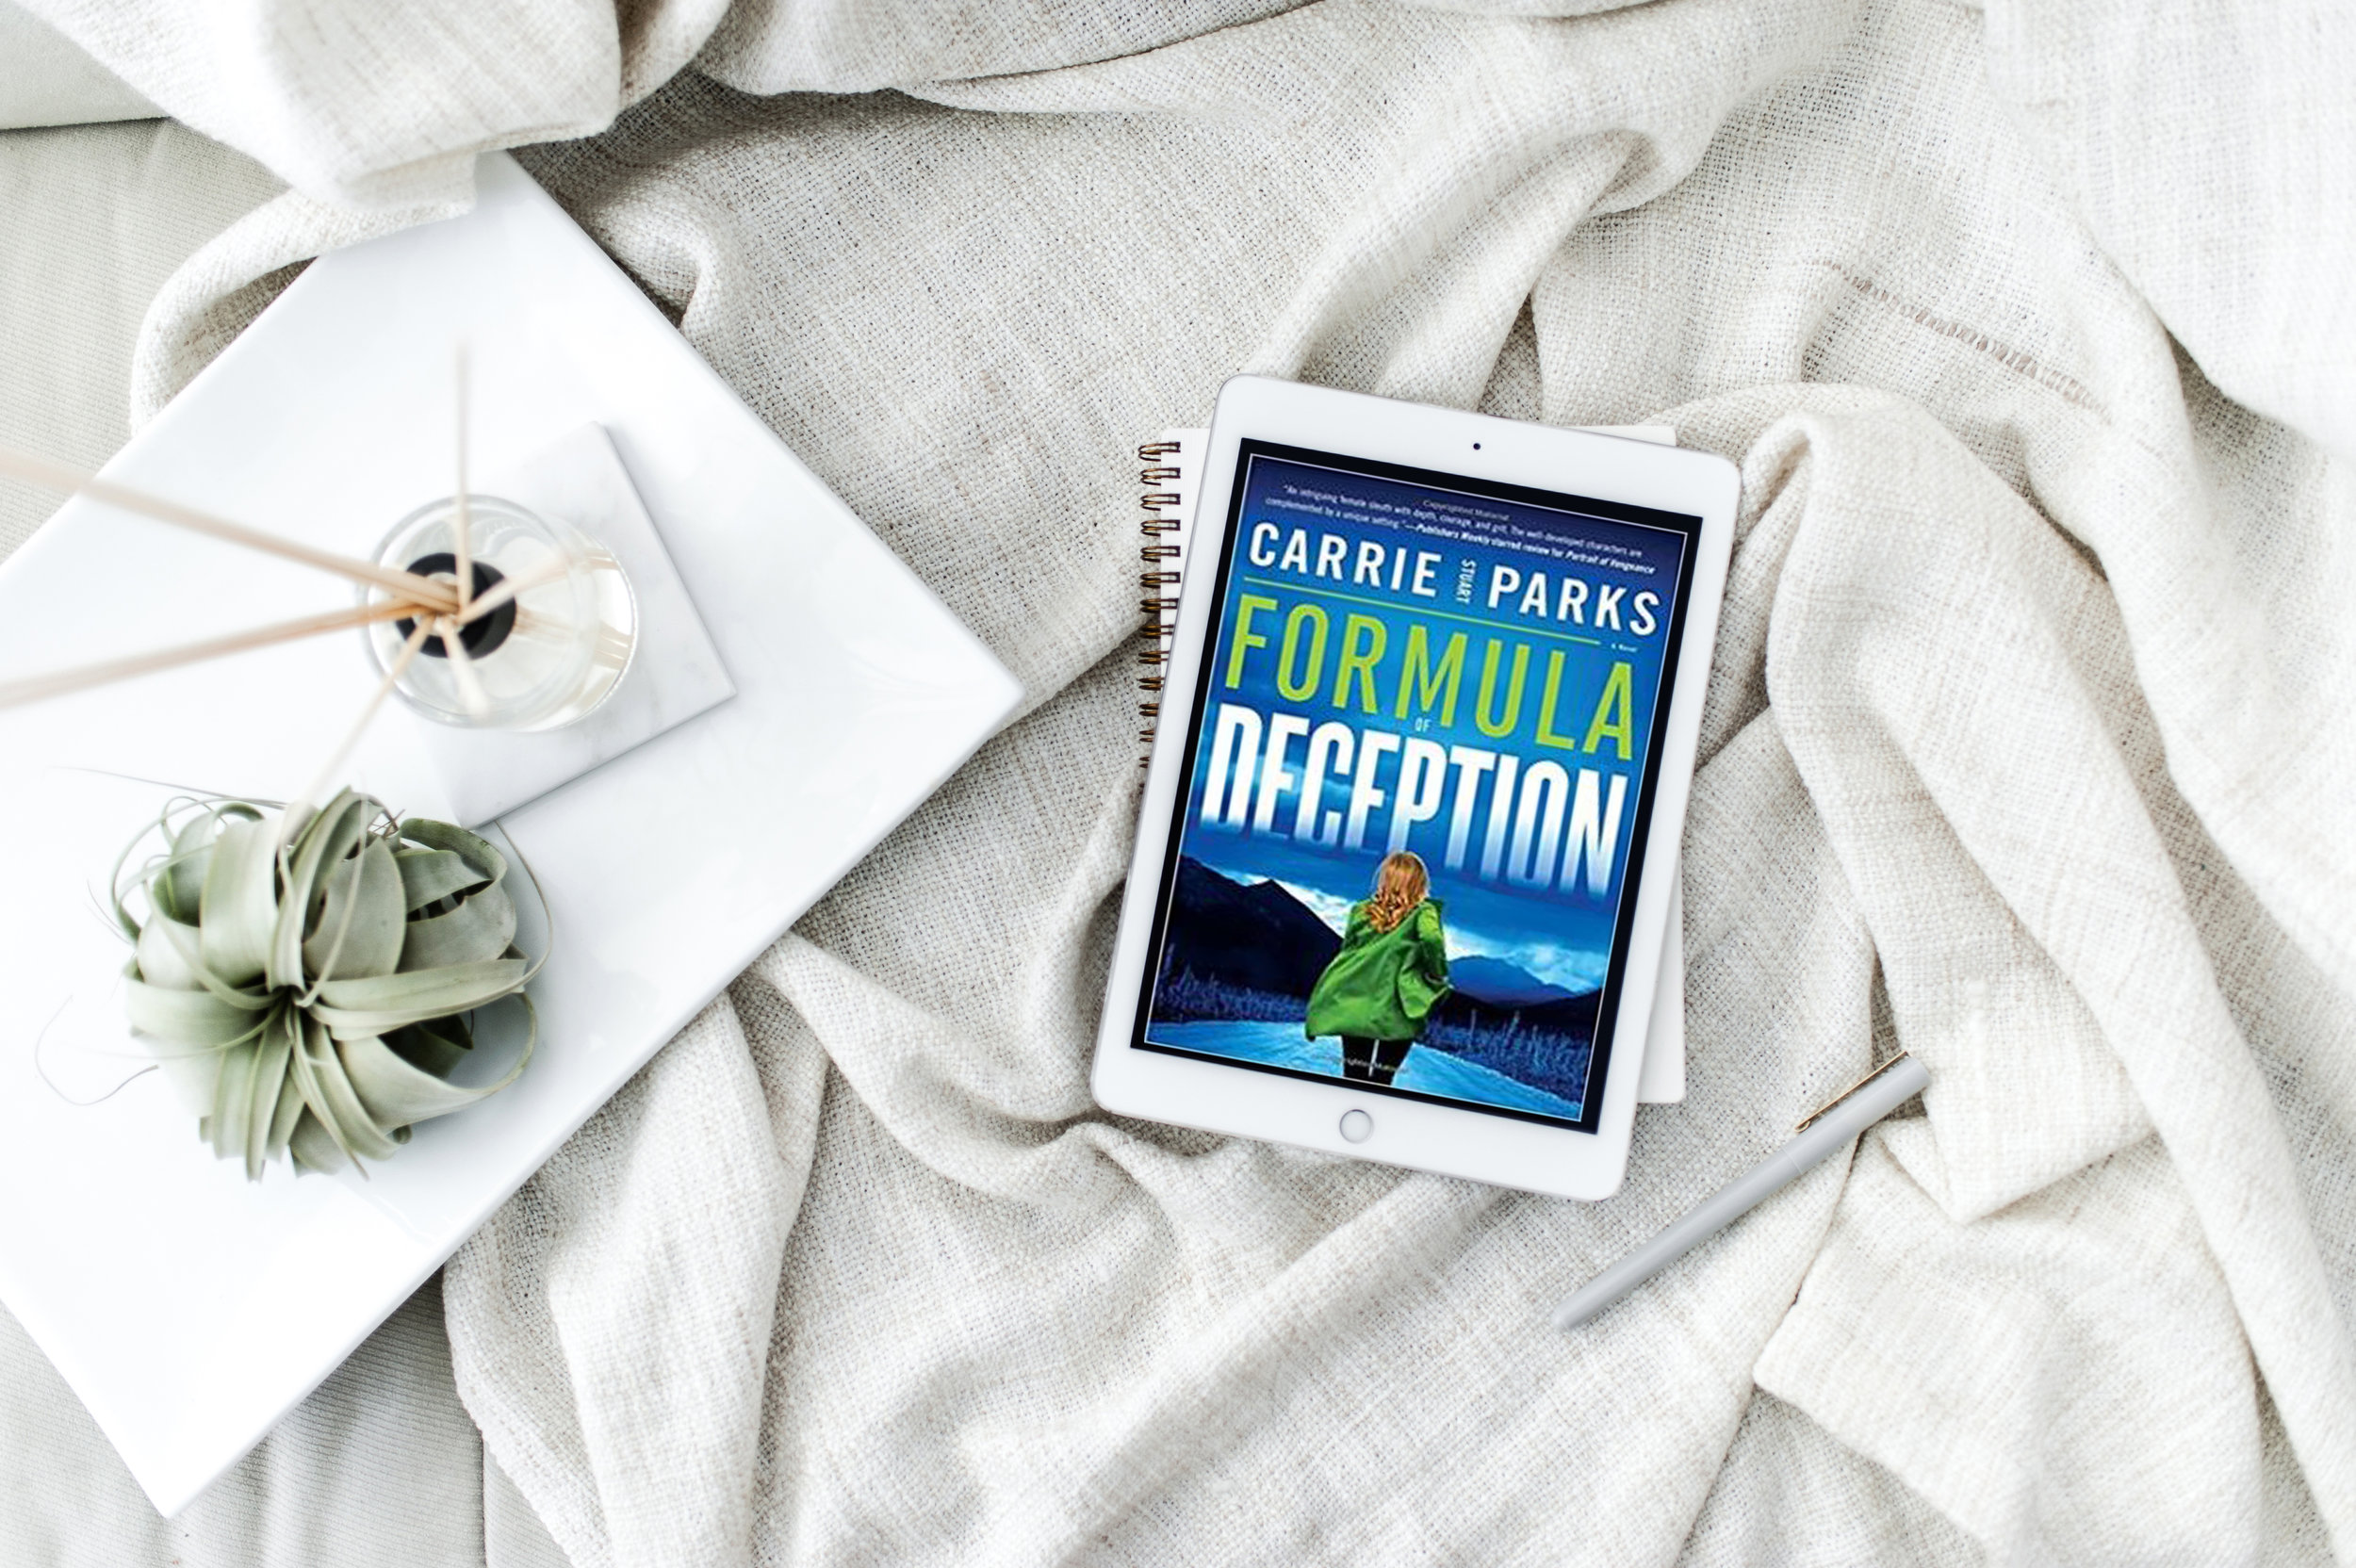 formula of deception carrie parks book review